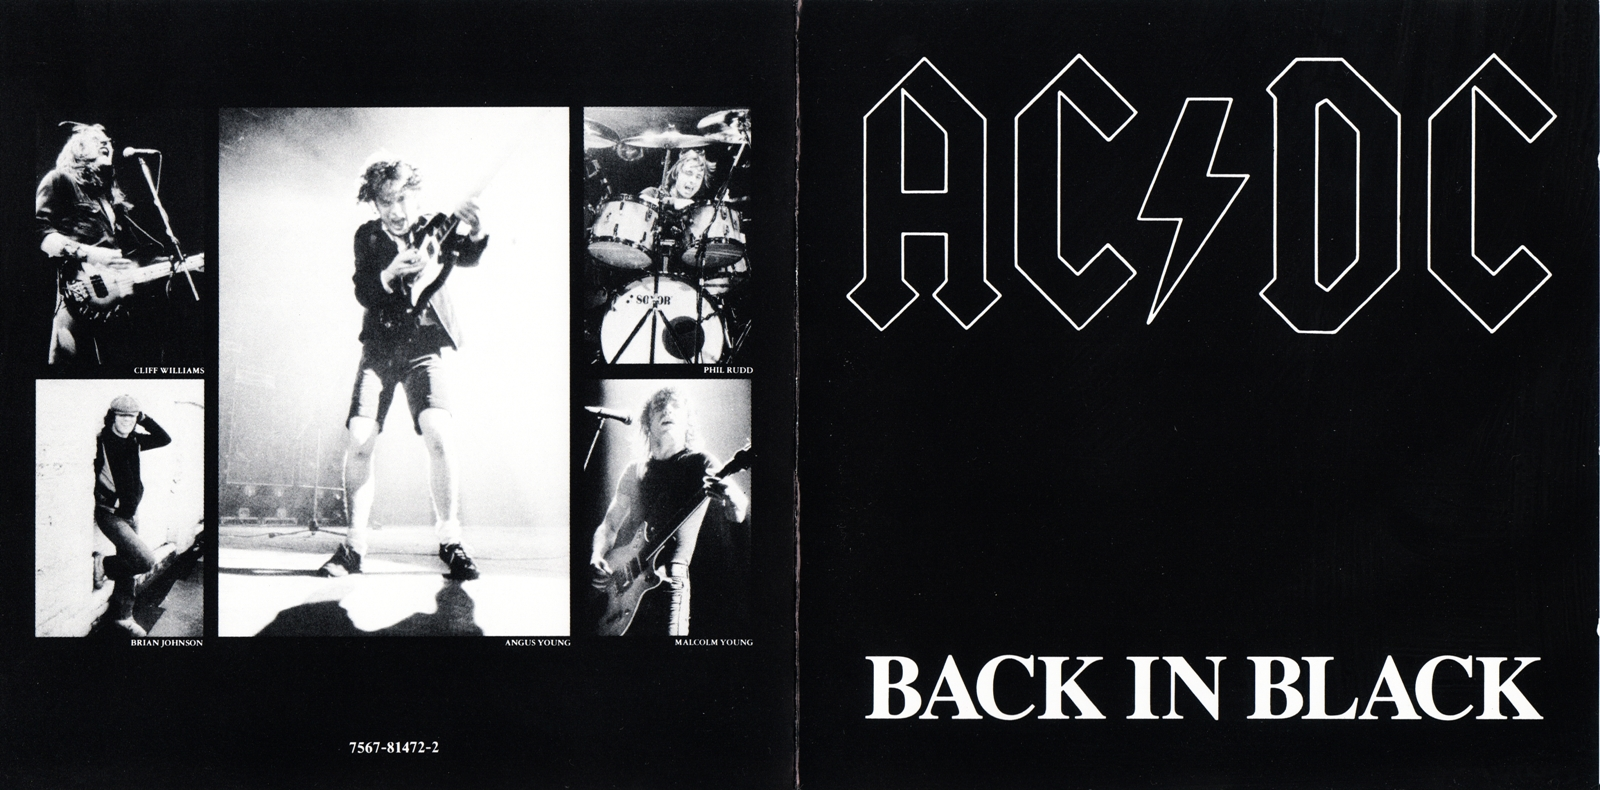 Tracklist back in black 1980 ac dc hells bells ac